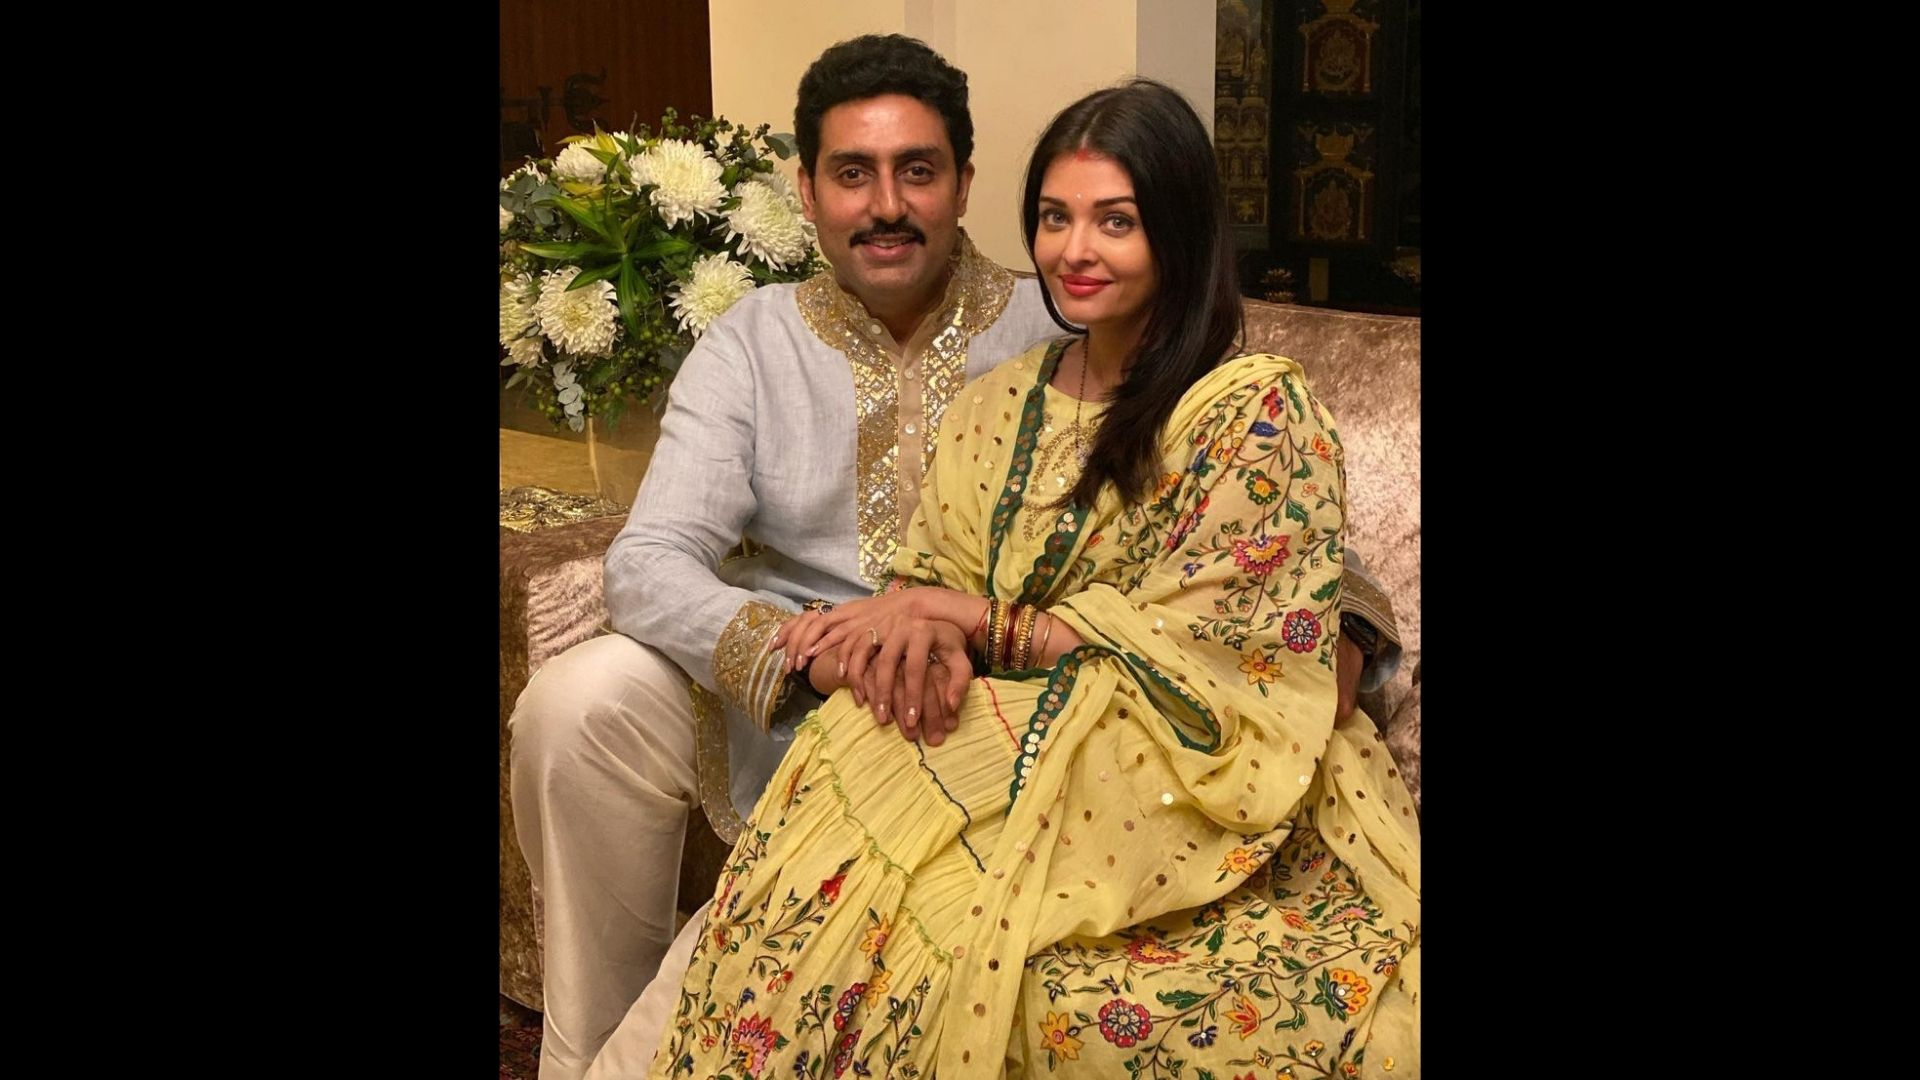 Abhishek Bachchan Reacts To His Viral Morphed Photo With Wife Aishwarya Rai From Their Wedding; Sets The Record Straight